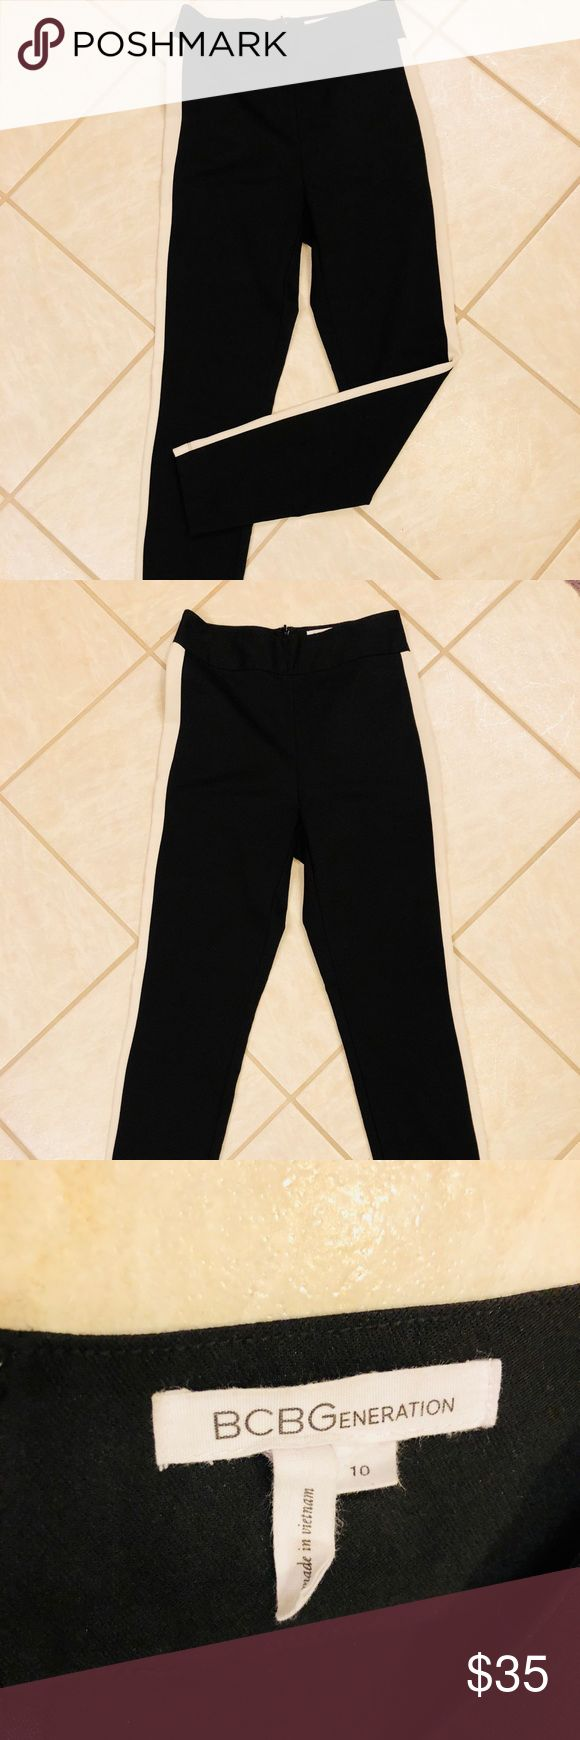 BCBG black skinny pants, never worn These high-waisted, black skinny pants from BCBG have a white stripe down the outside and a zipper in the back. Very flattering. BCBGeneration Pants Skinny